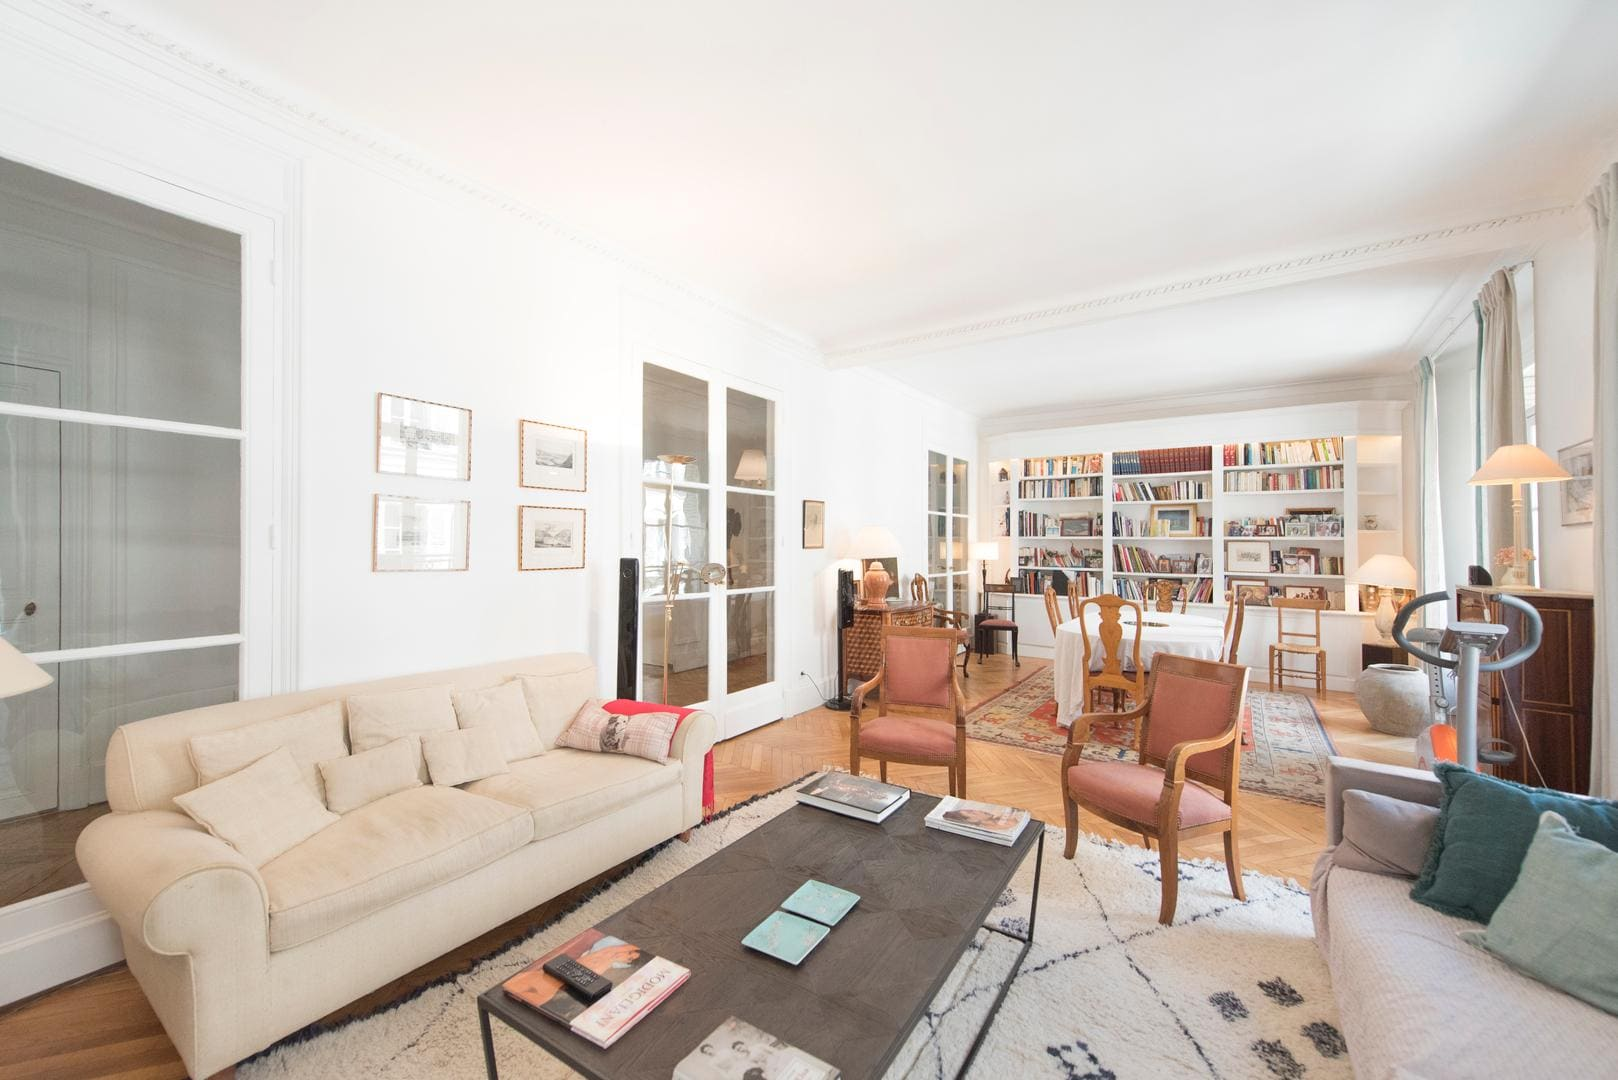 Property Image 1 - Spacious Inviting Apartment in the 16th near the Seine